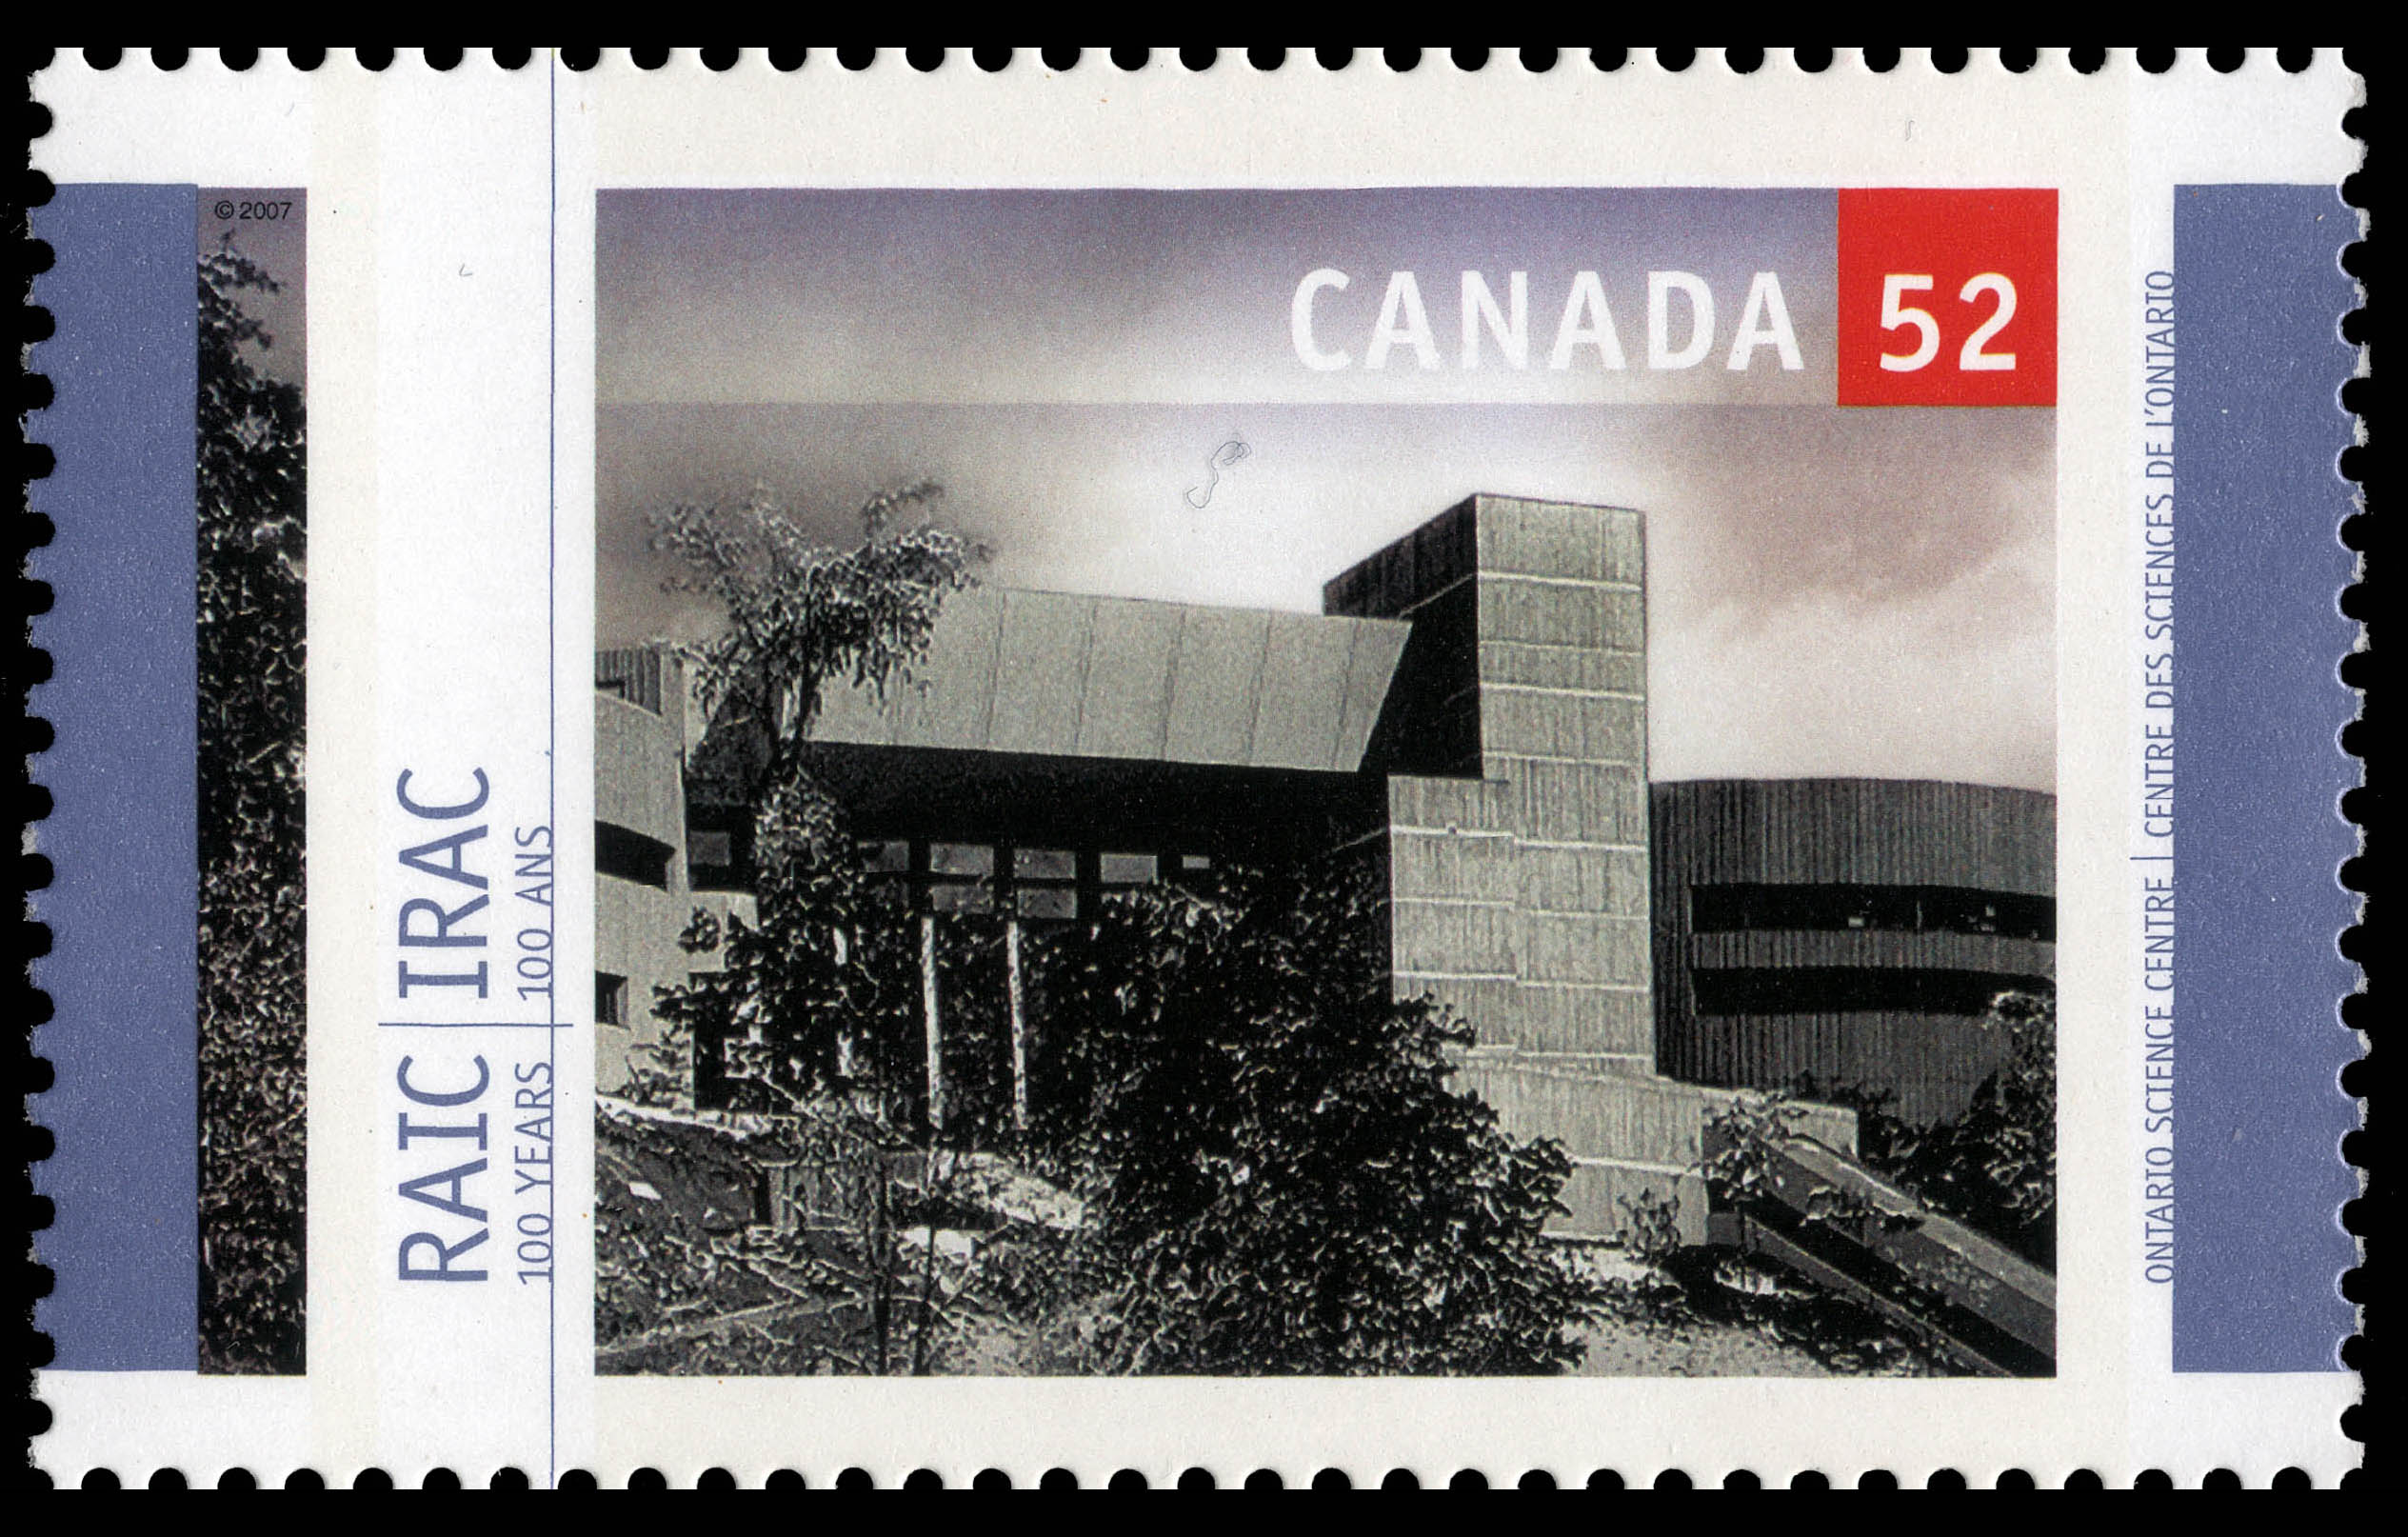 Ontario Science Centre Canada Postage Stamp | Royal Architectural Institute of Canada, 100 Years